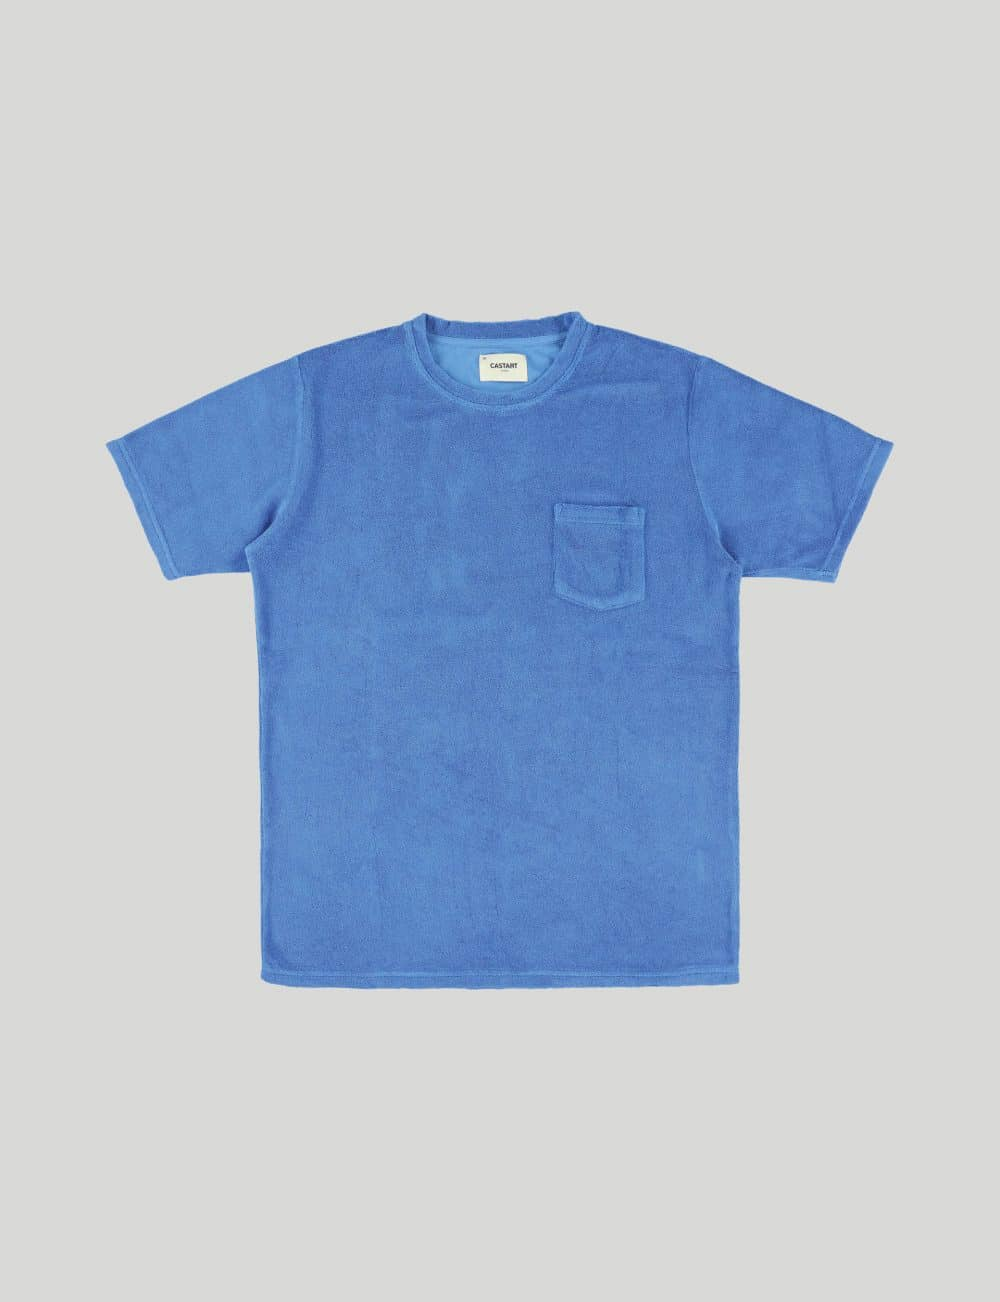 Castart - Seabase Tee - French Blue